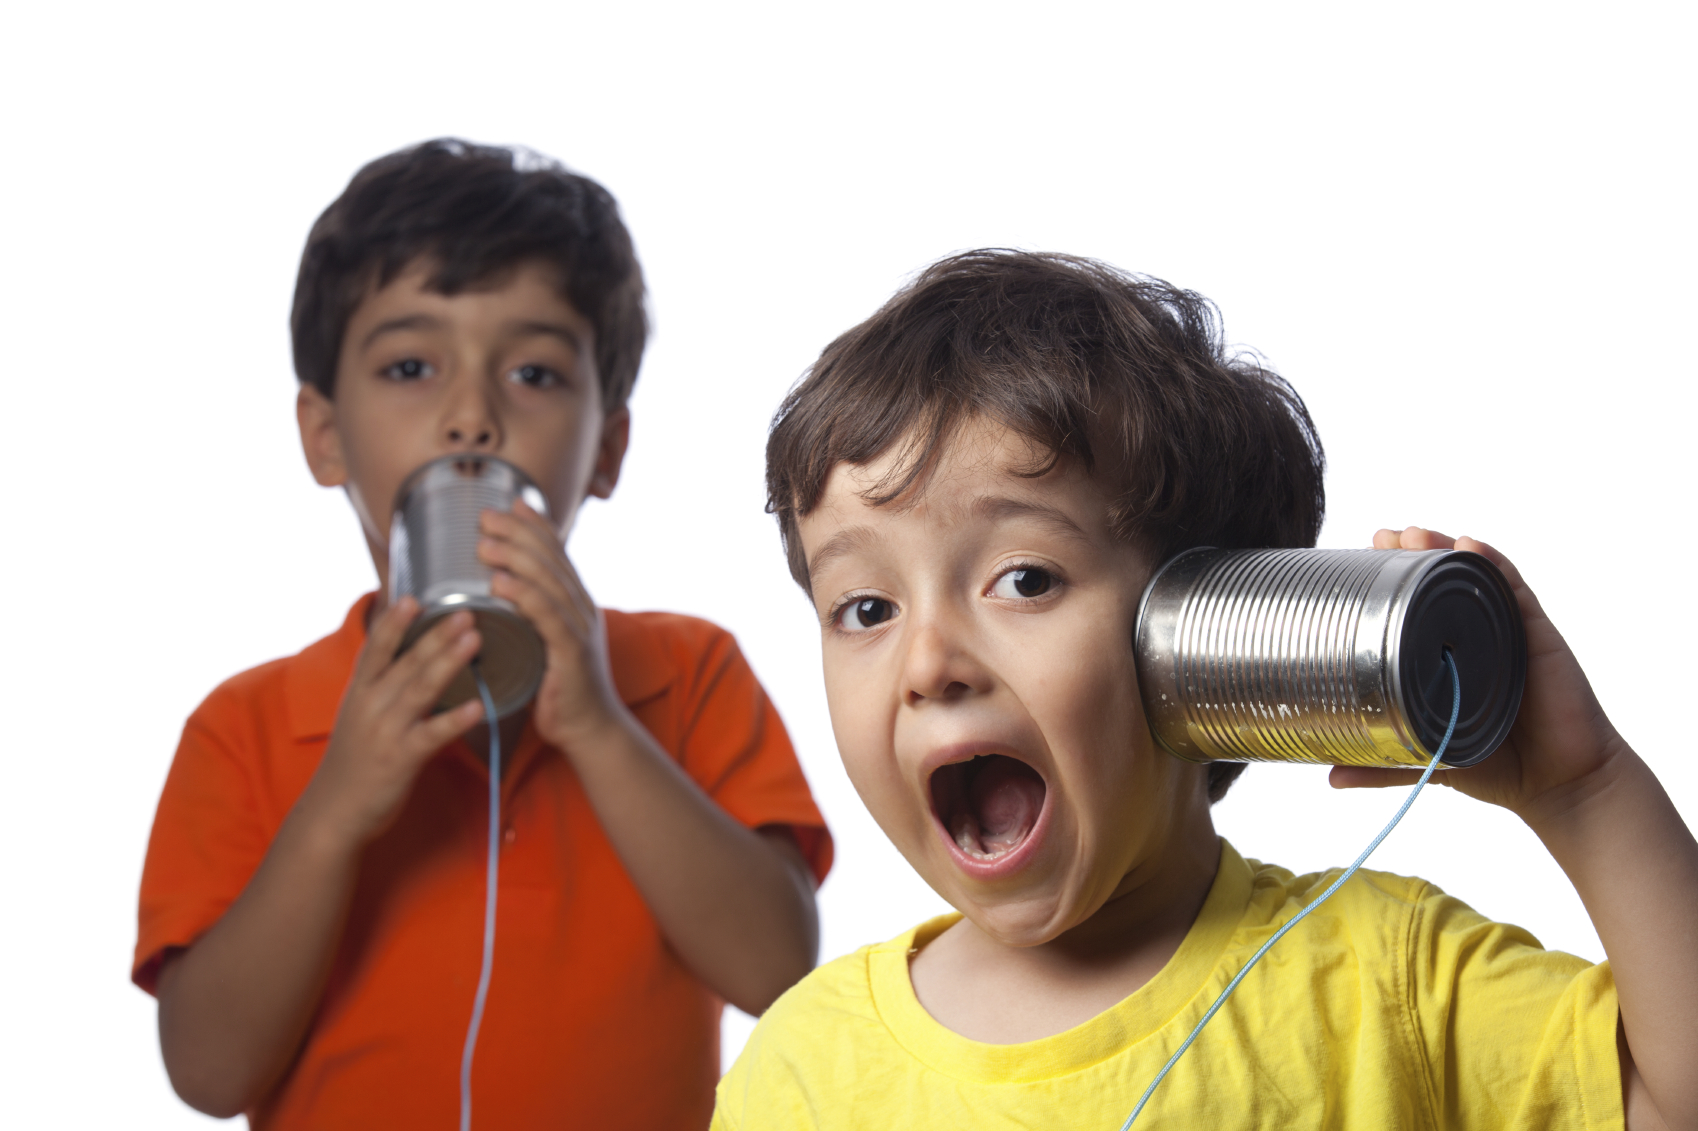 communication with children Effective communication with children is very important but unfortunately some parents undervalue it as they are more concerned with imposing restrictions.